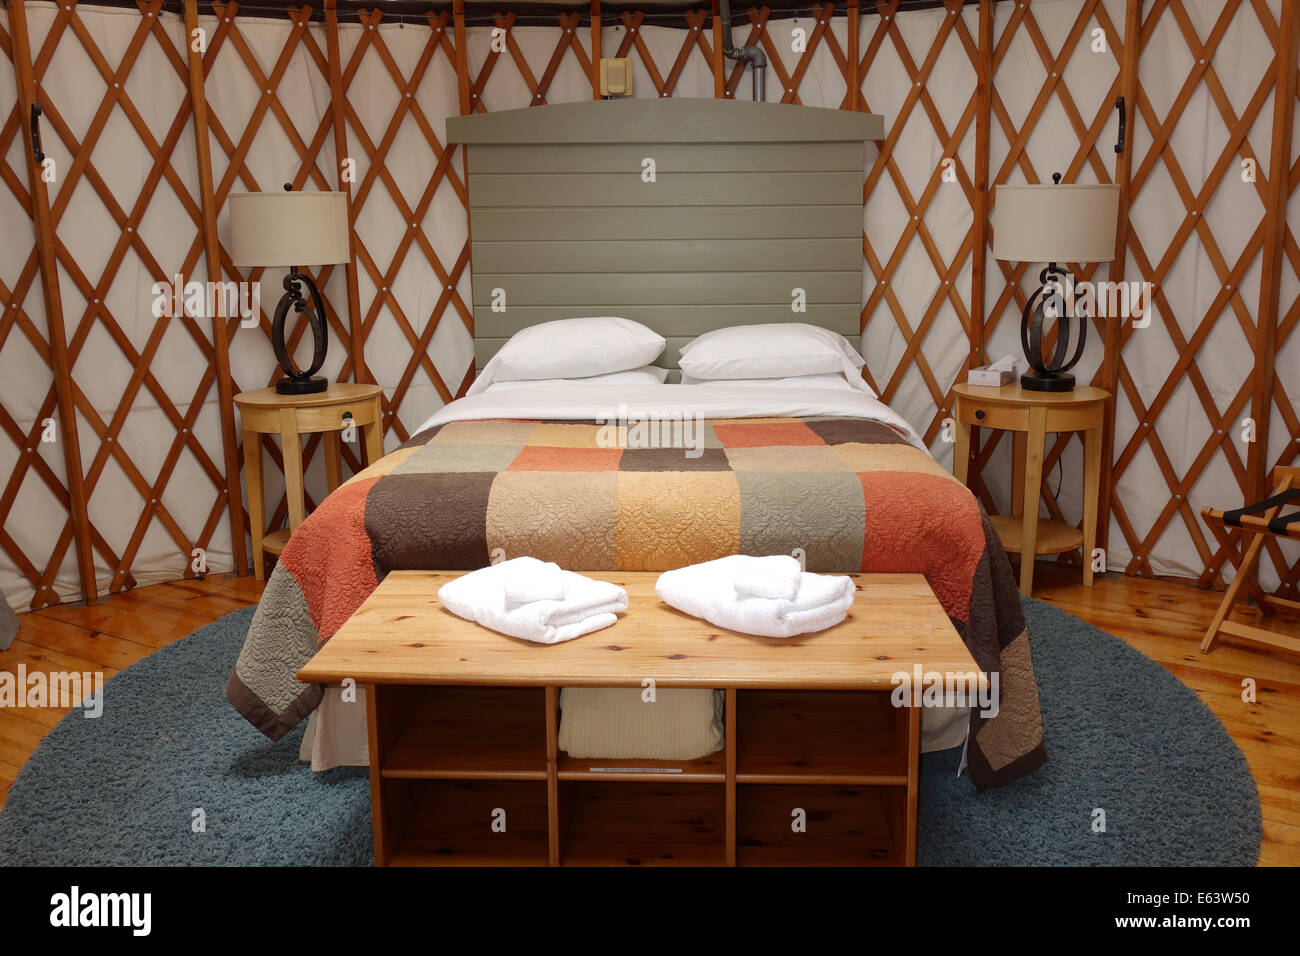 Inside a luxury yurt, known as 'glamping' instead of camping. - Stock Image